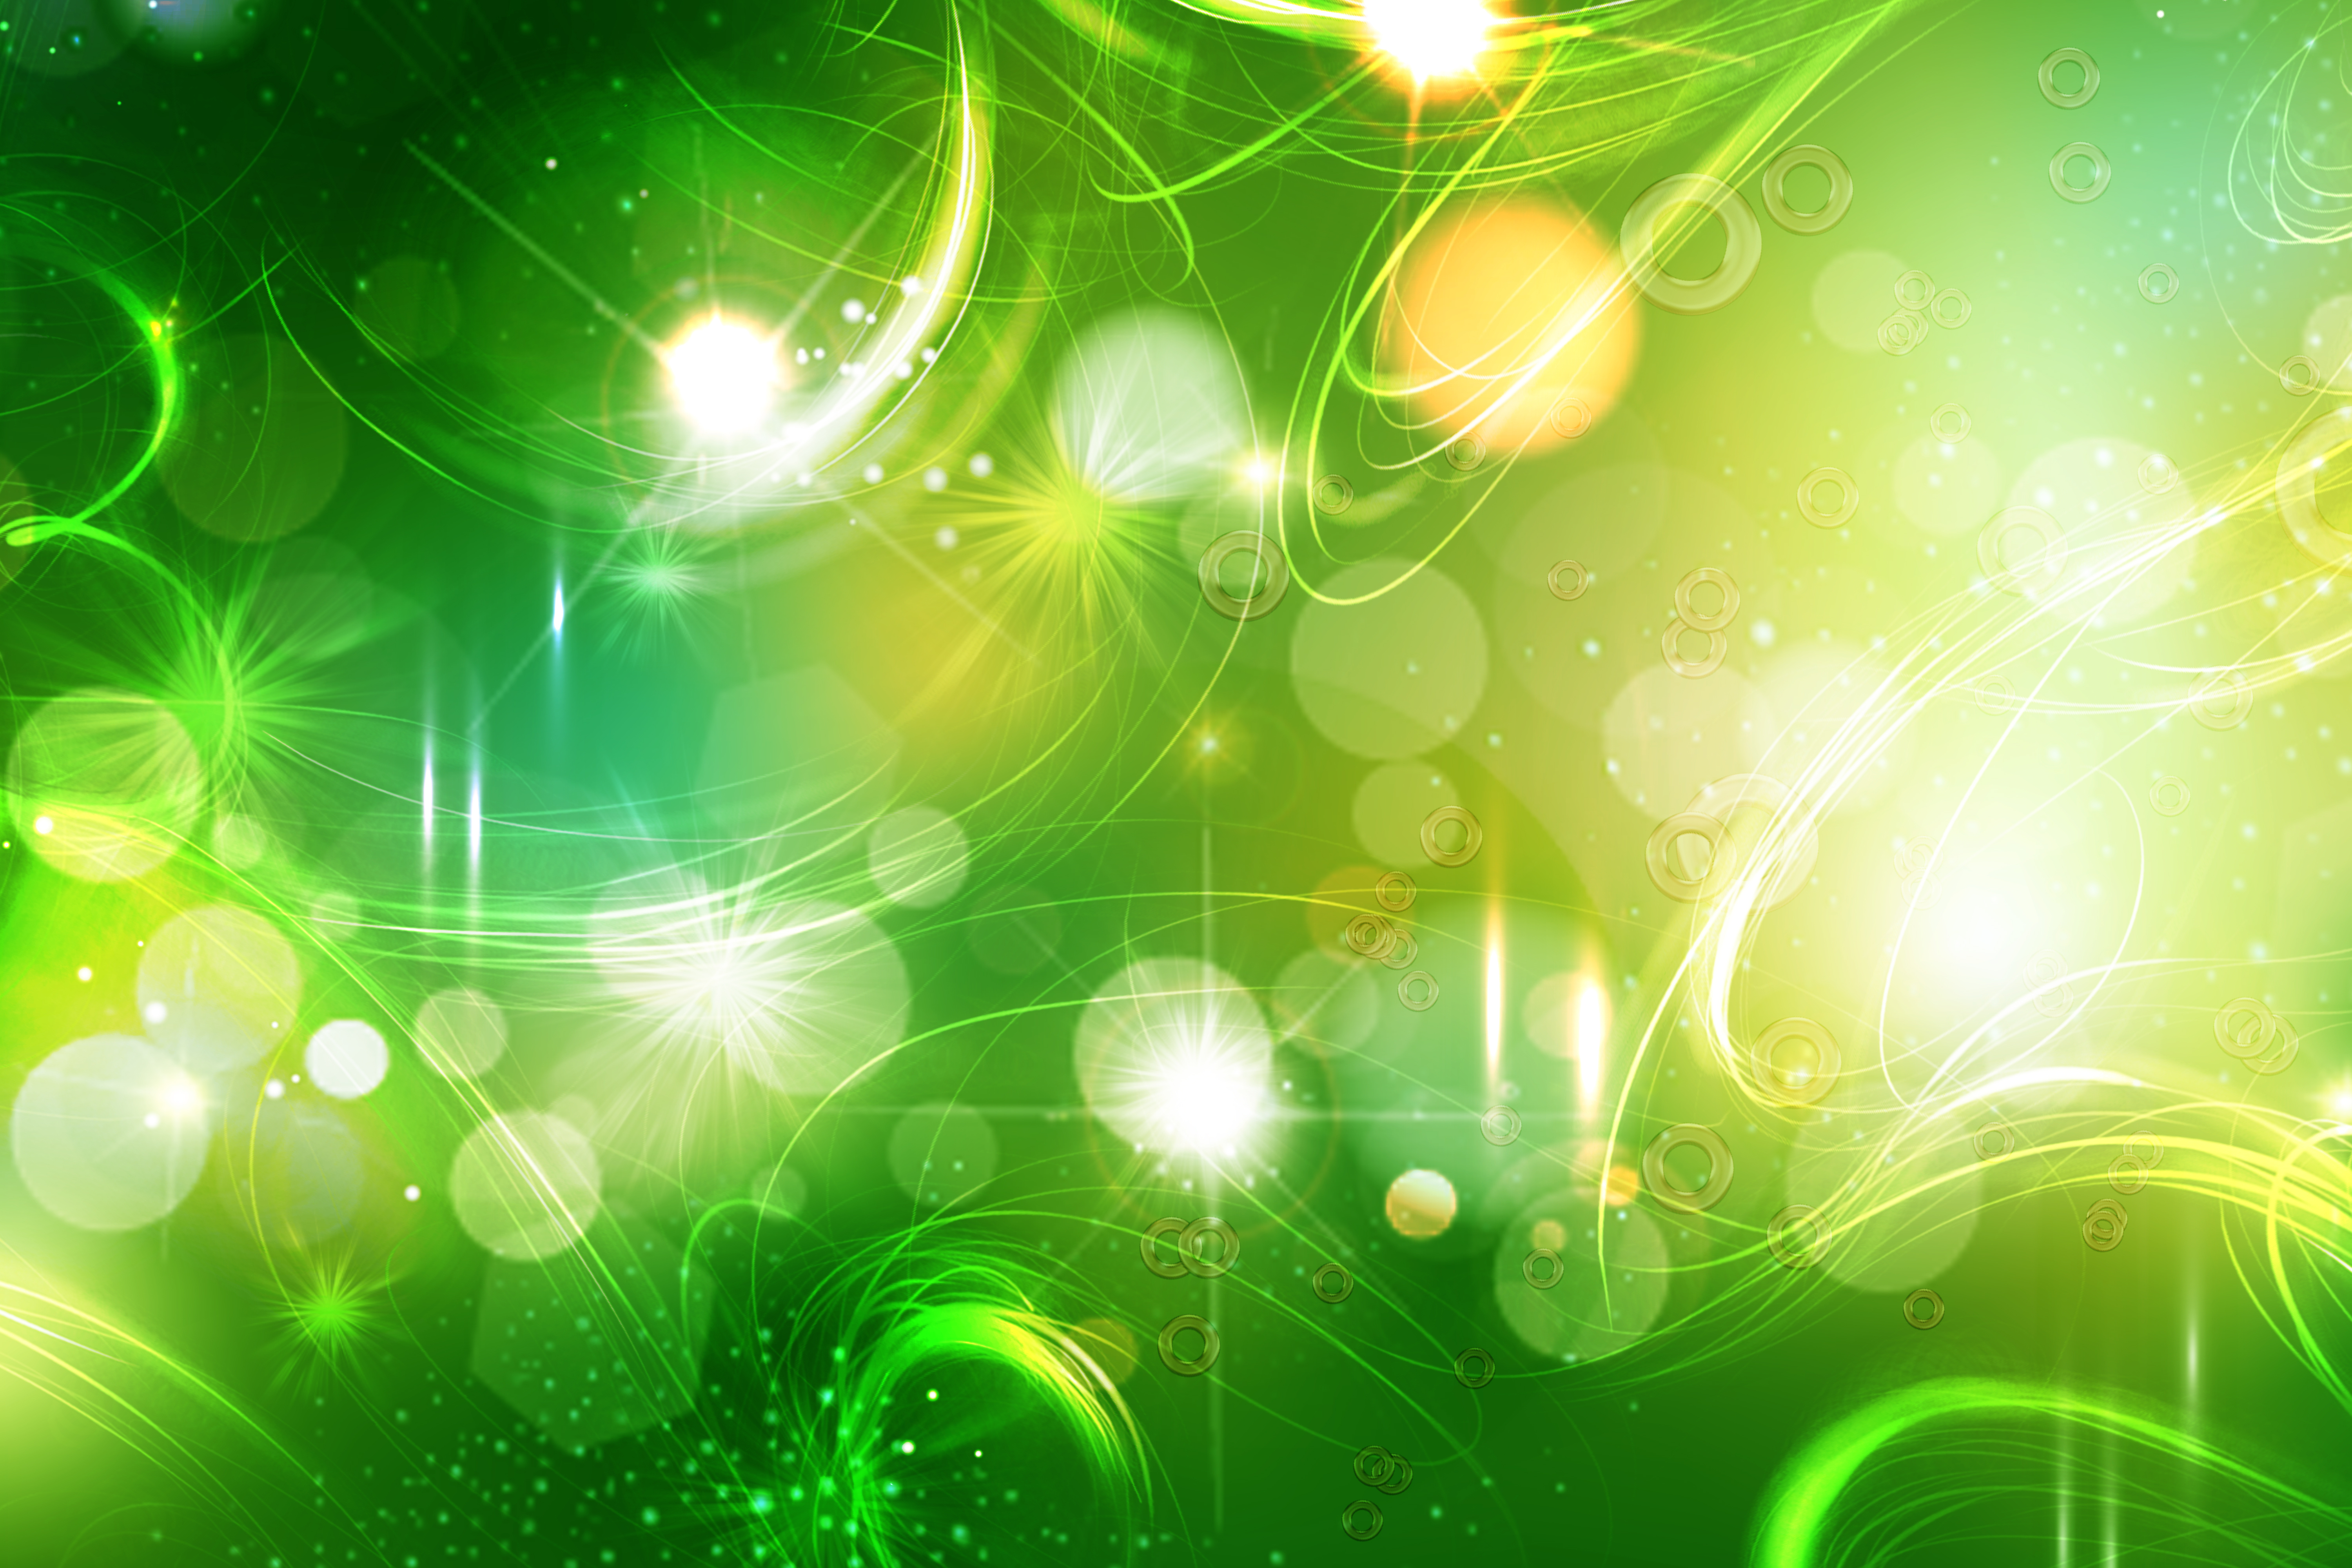 green-shining-picture-desktop-background-abstract-photo-abstract